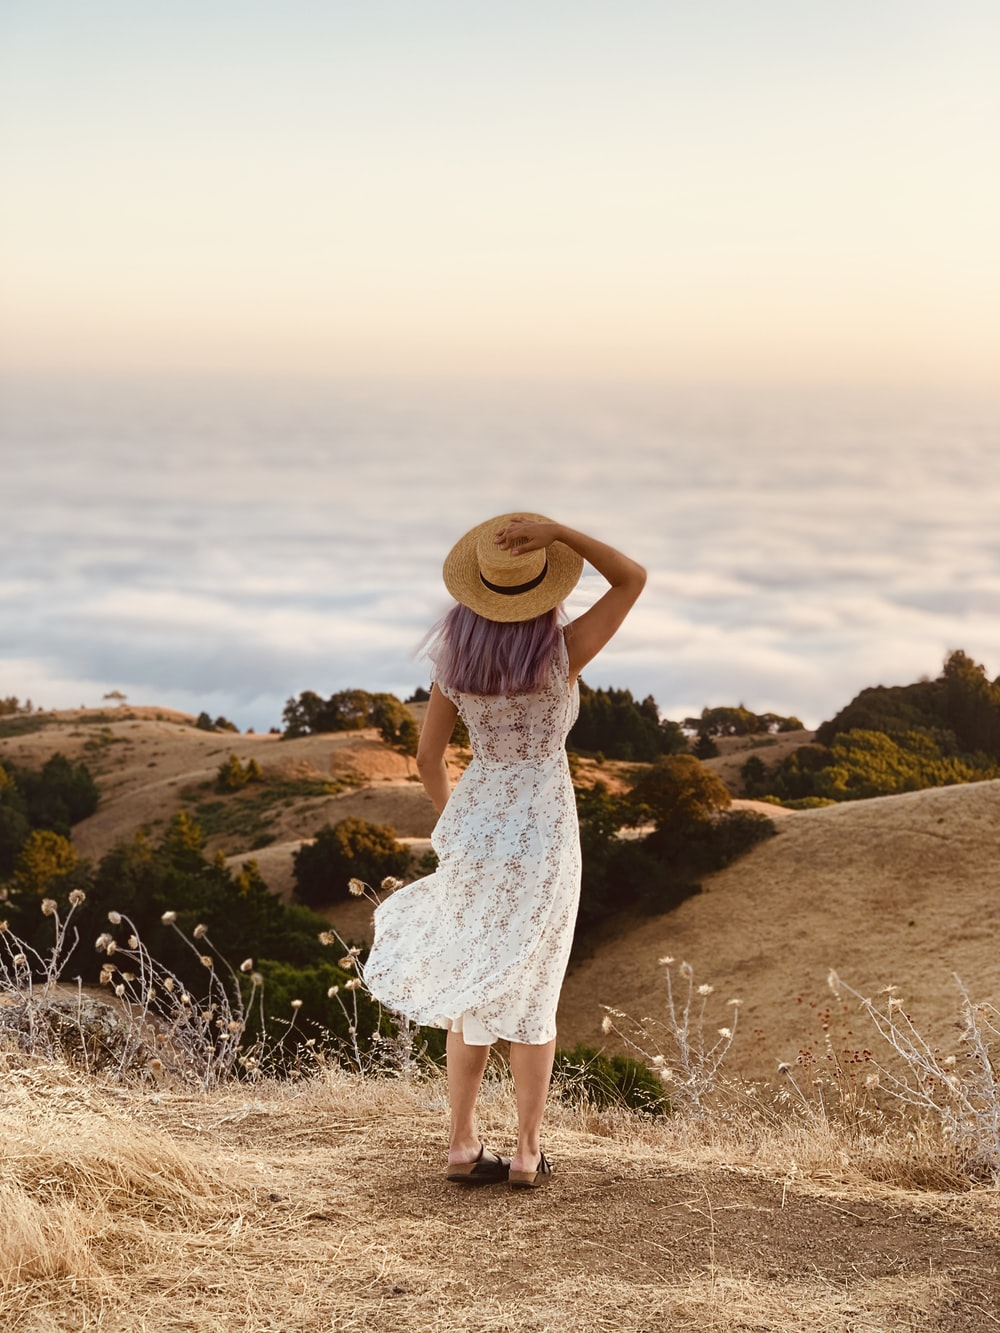 women's white lace dress and brown sunhat on top of hill during daytime